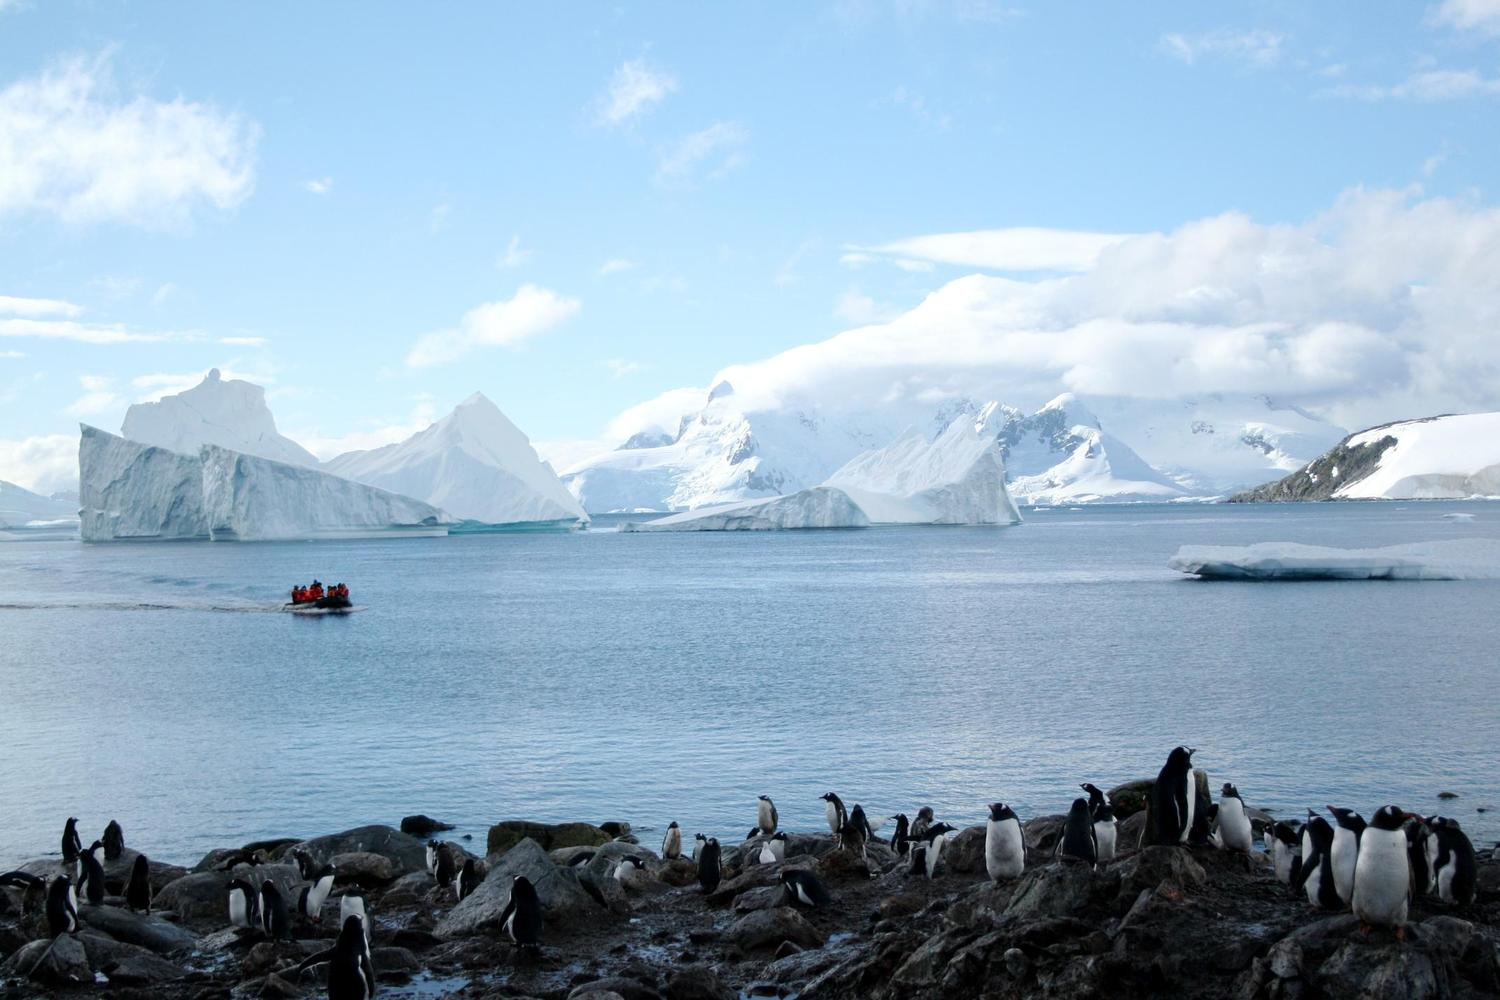 Zodiac approaching a penguin covered shoreline in Antarctica